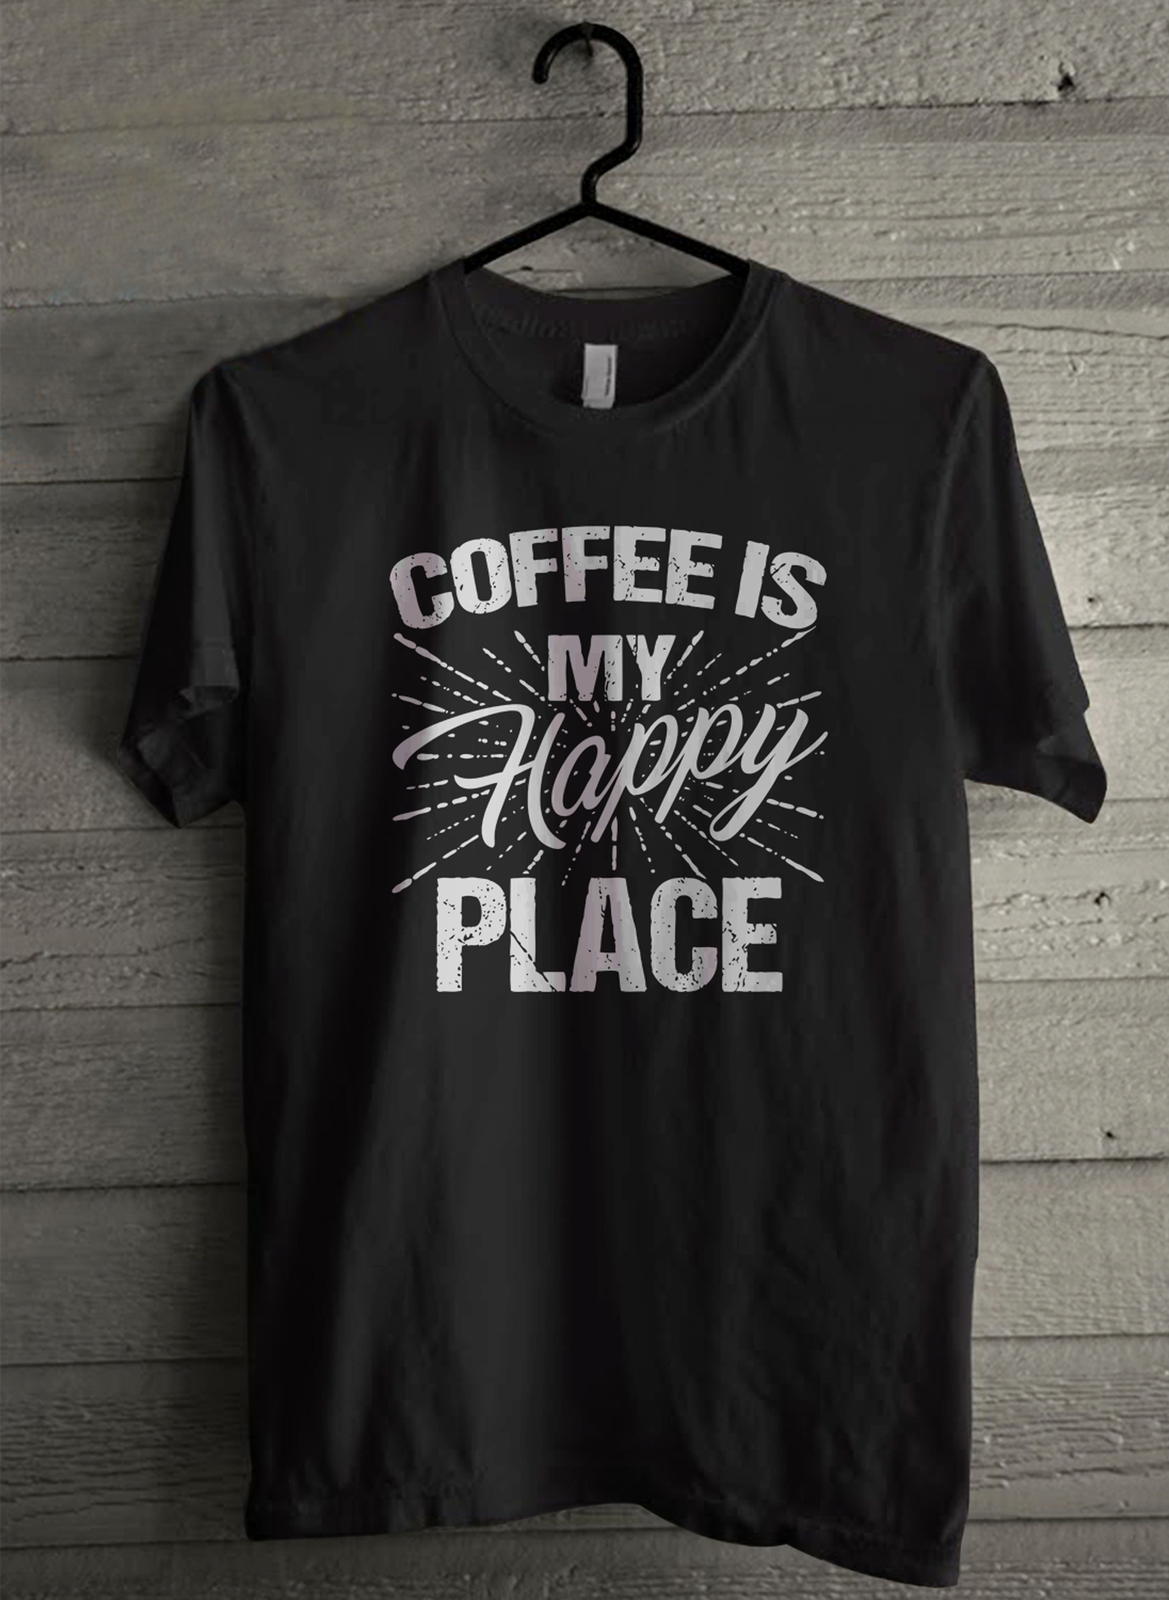 COFFEE IS MY HAPPY PLACE - Custom Men's T-Shirt (1922)